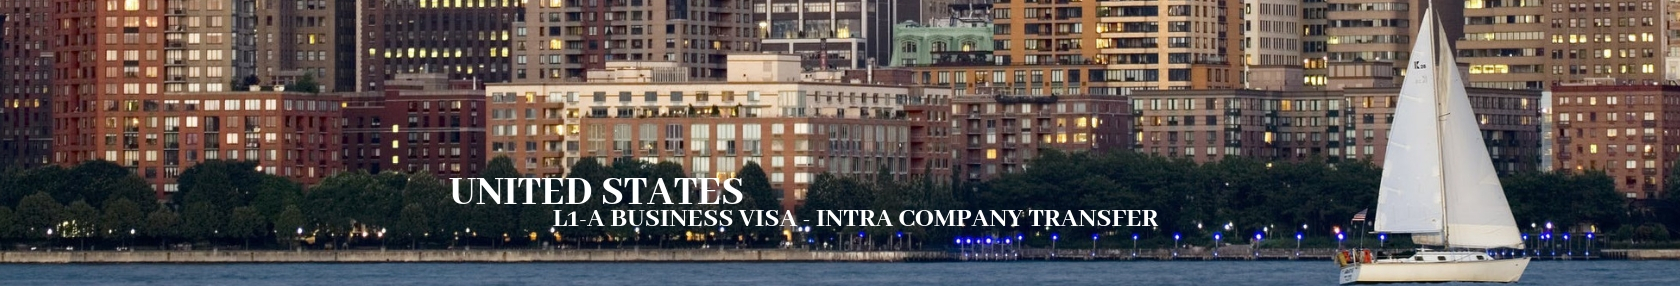 l1a business visa